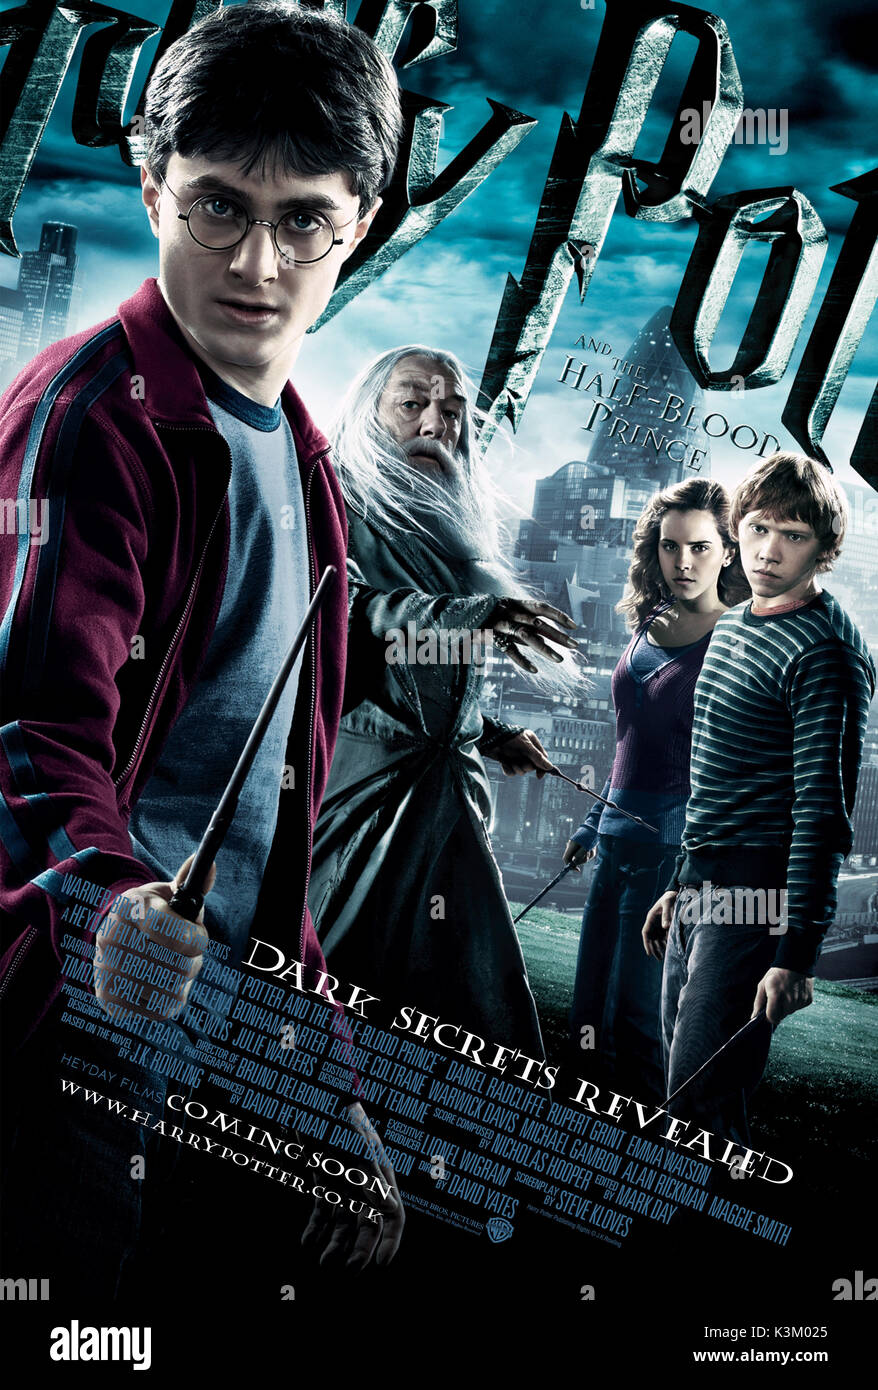 HARRY POTTER AND THE HALF BLOOD PRINCE DANIEL RADCLIFFE as Harry Potter, MICHAEL GAMBON as Albus Dumbledore, EMMA WATSON as Hermione Granger, RUPERT GRINT as Ron Weasley       Date: 2009 - Stock Image